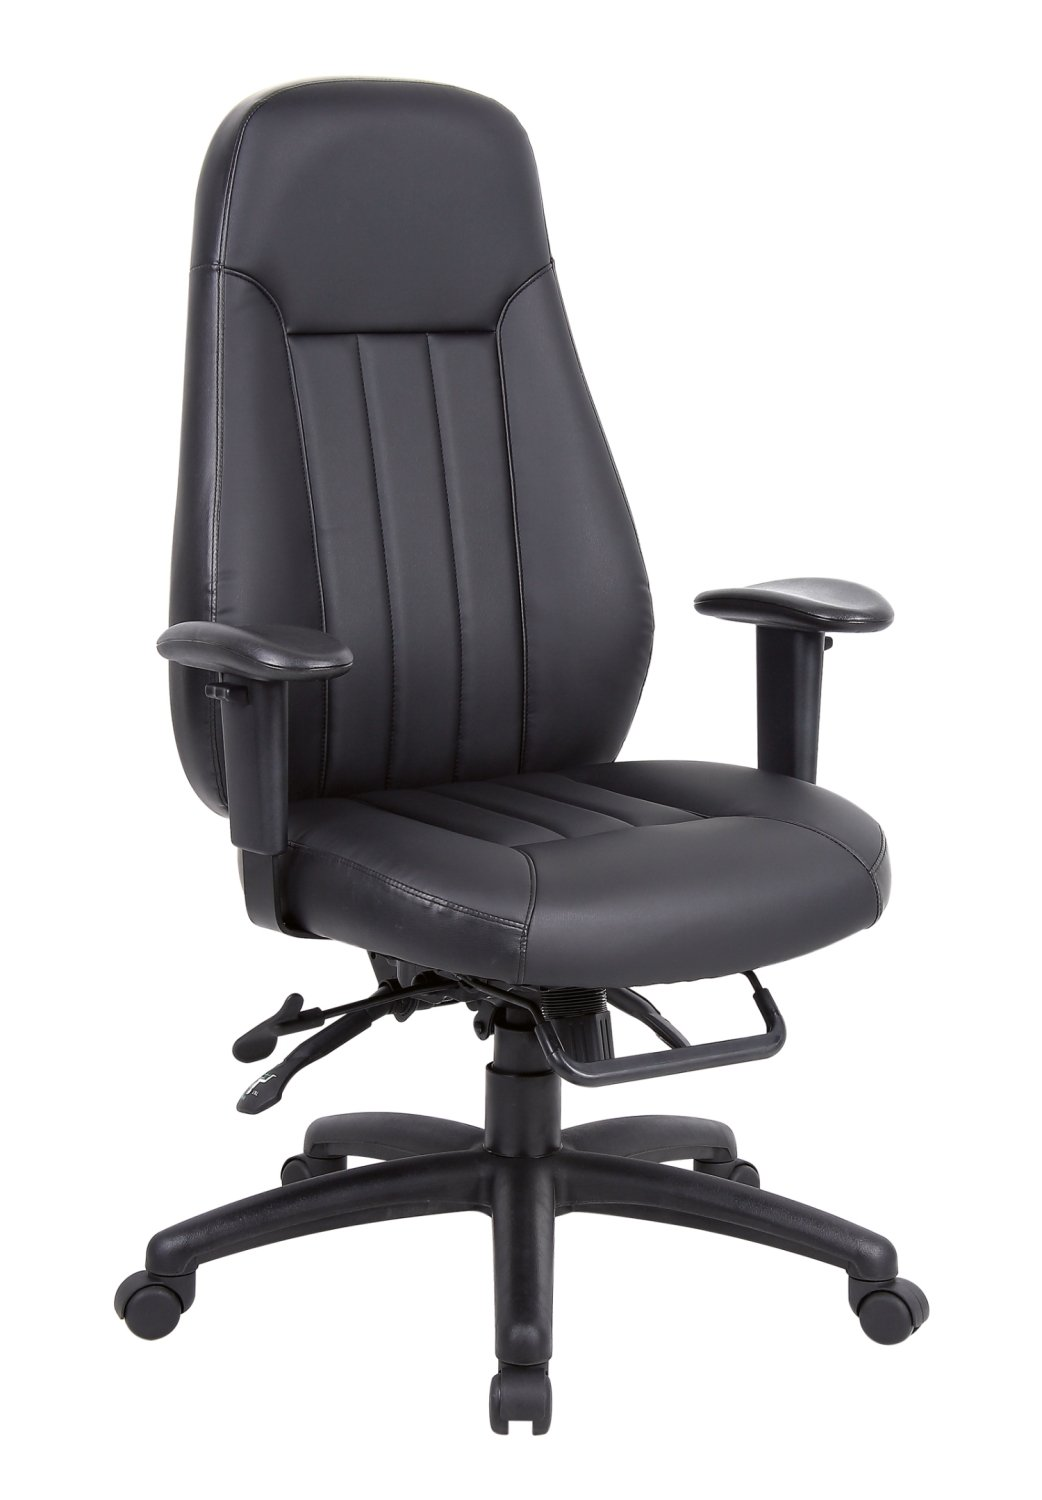 24 Hour Office Chairs Dams Zeus High 24 Hour Chair